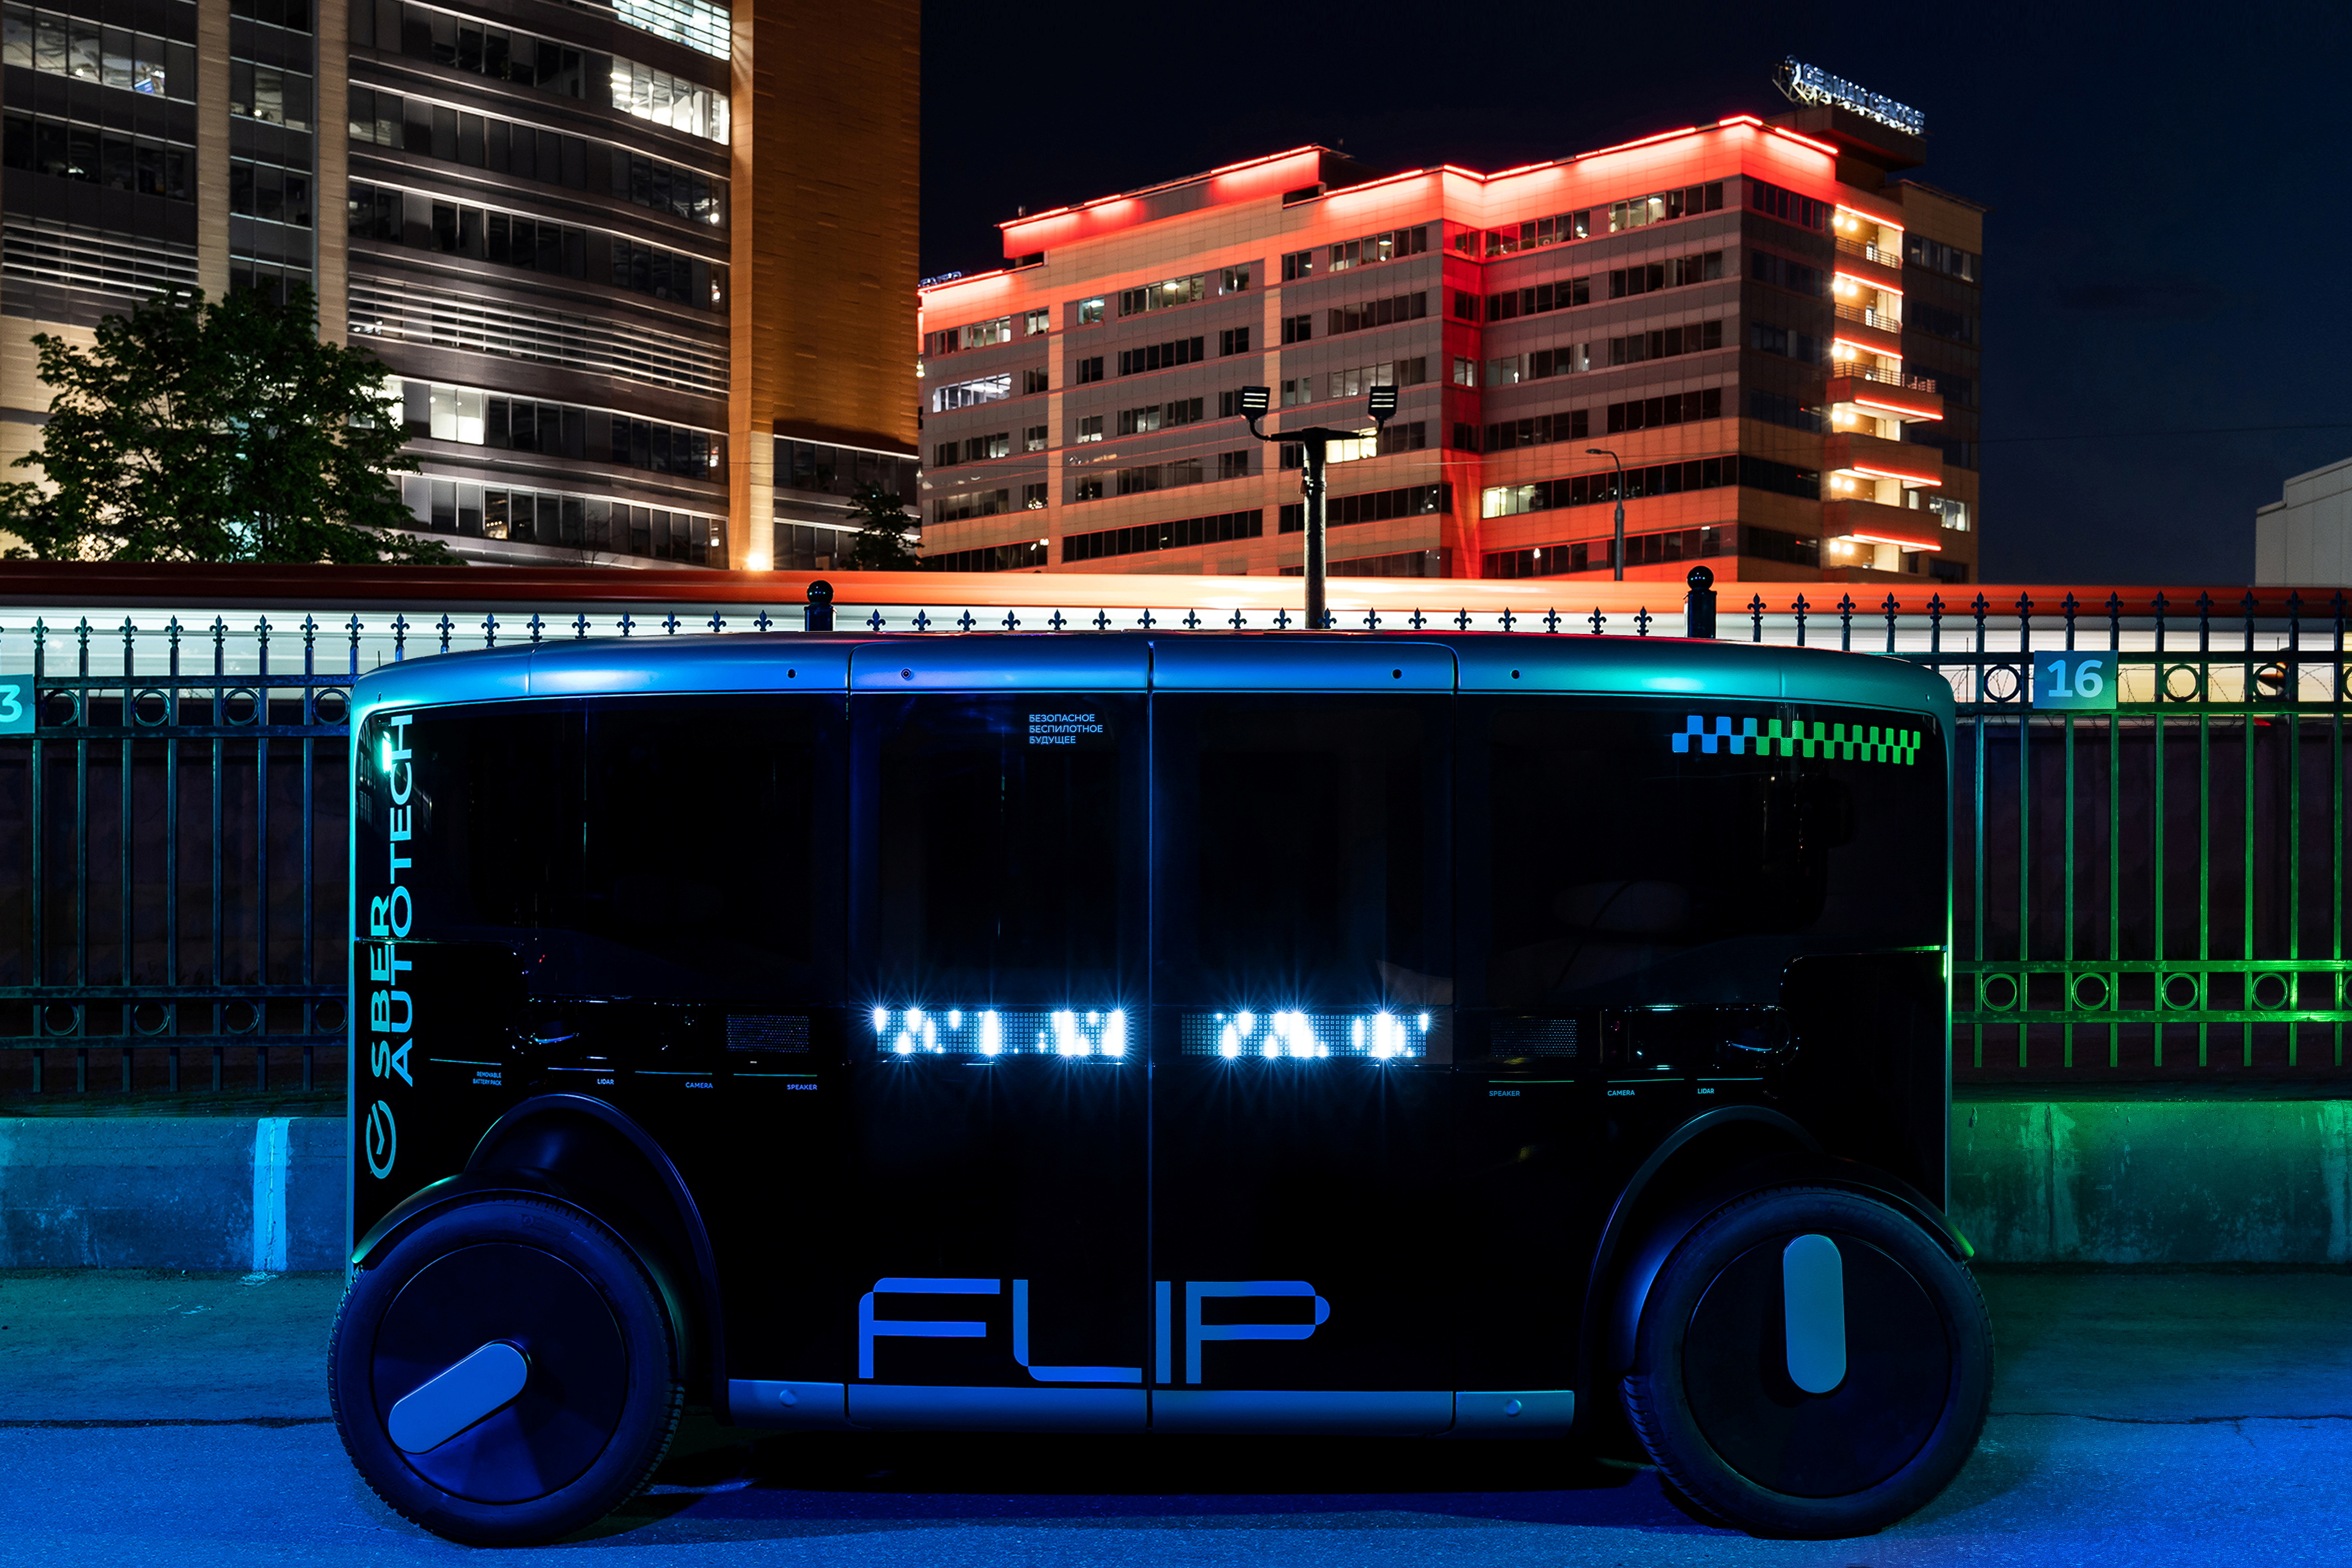 FLIP, a fully self-driving vehicle developed by Sberbank, is seen in this handout image released on May 27, 2021. Courtesy of Sberbank/Handout via REUTERS